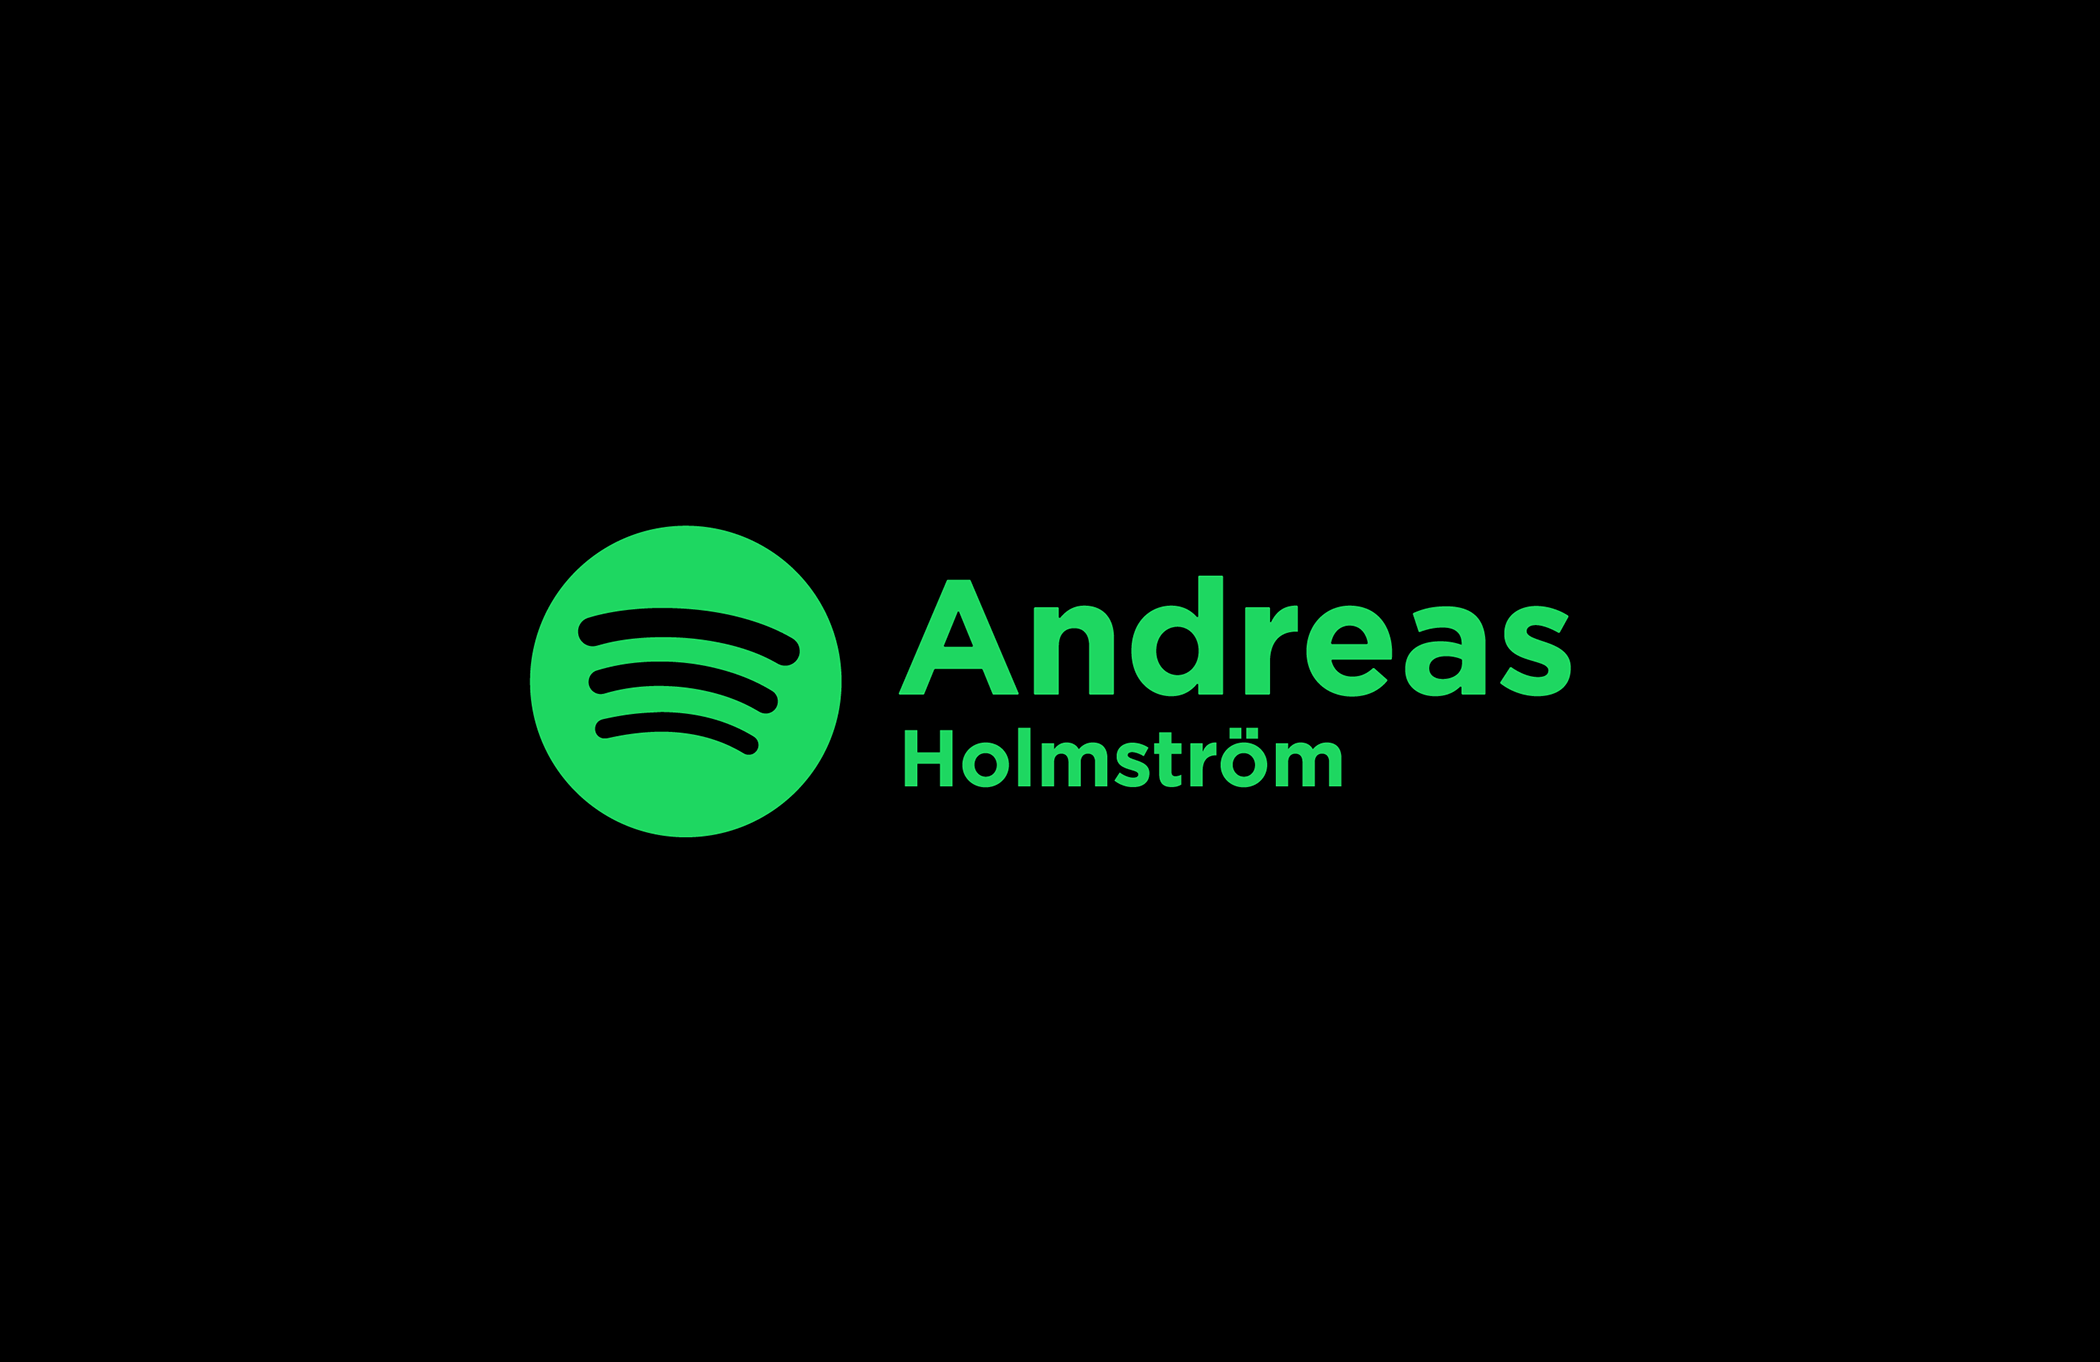 Andreas Holmstrom - Designer of the Spotify logo